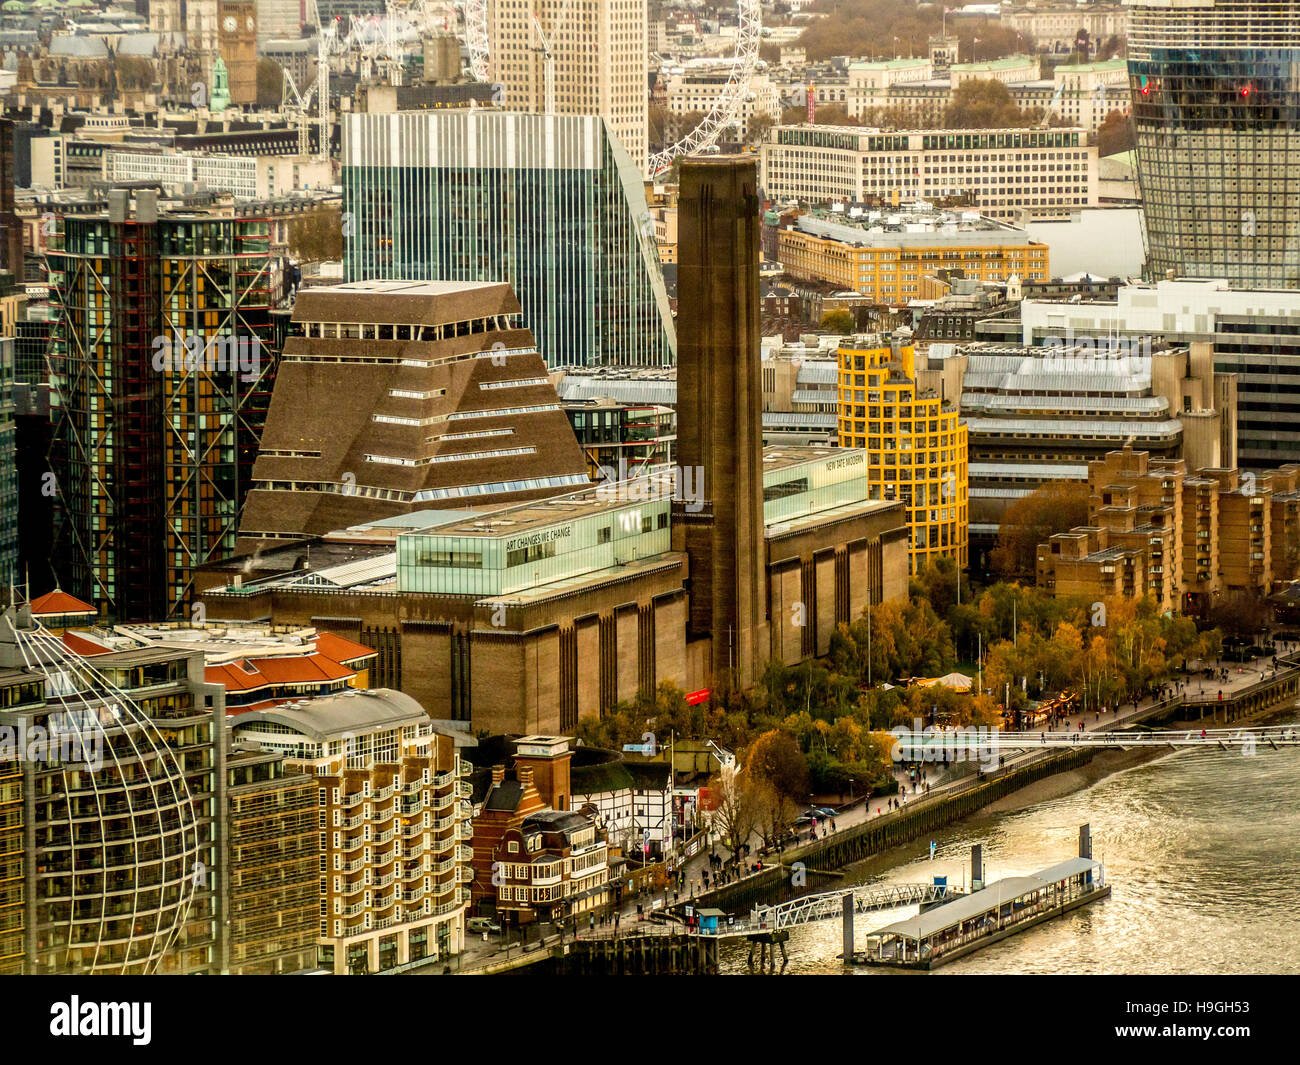 Tate Modern, London, UK. - Stock Image